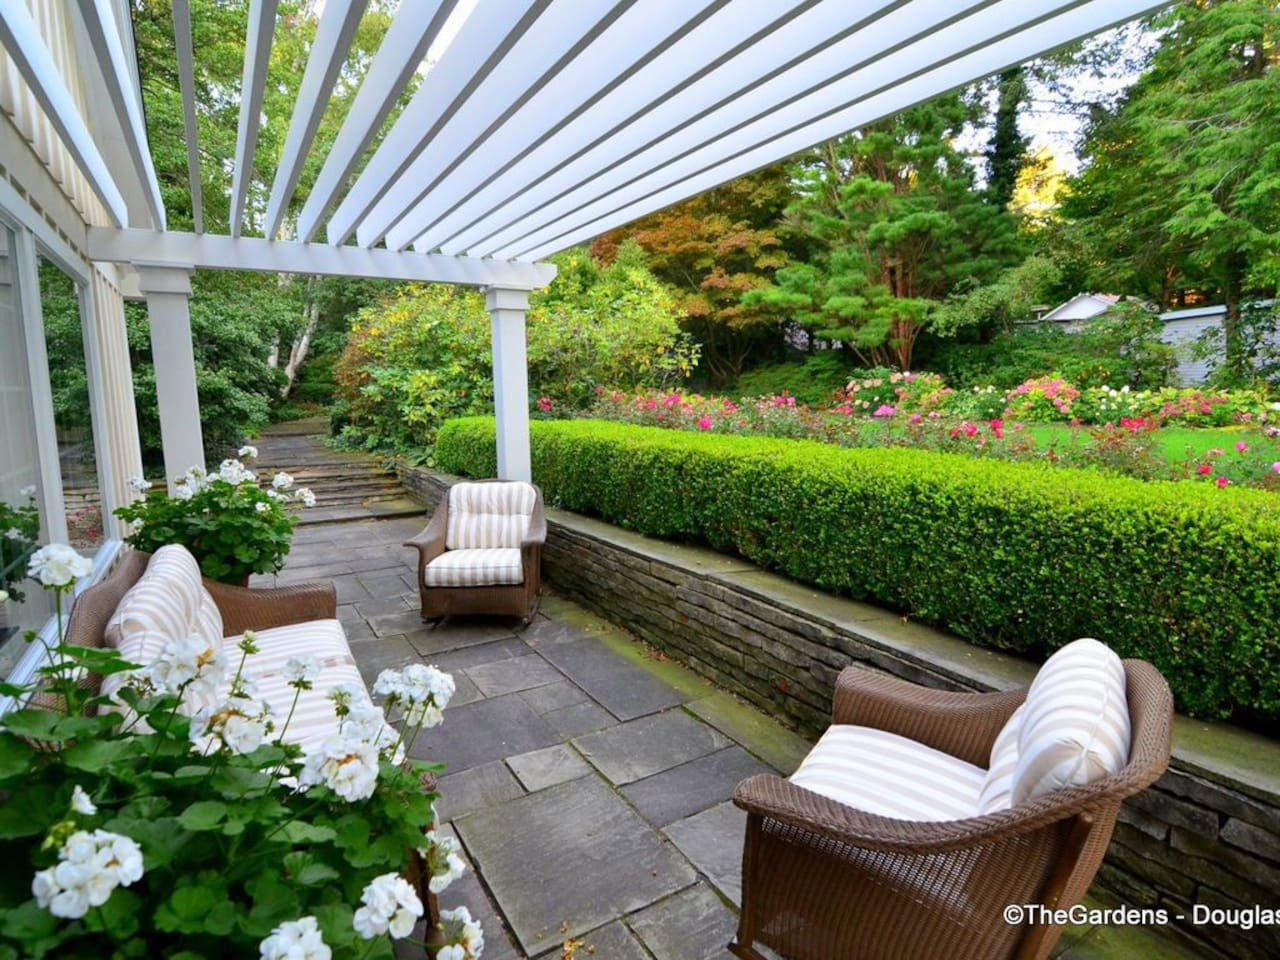 You will love to relax here at The Gardens Azalea